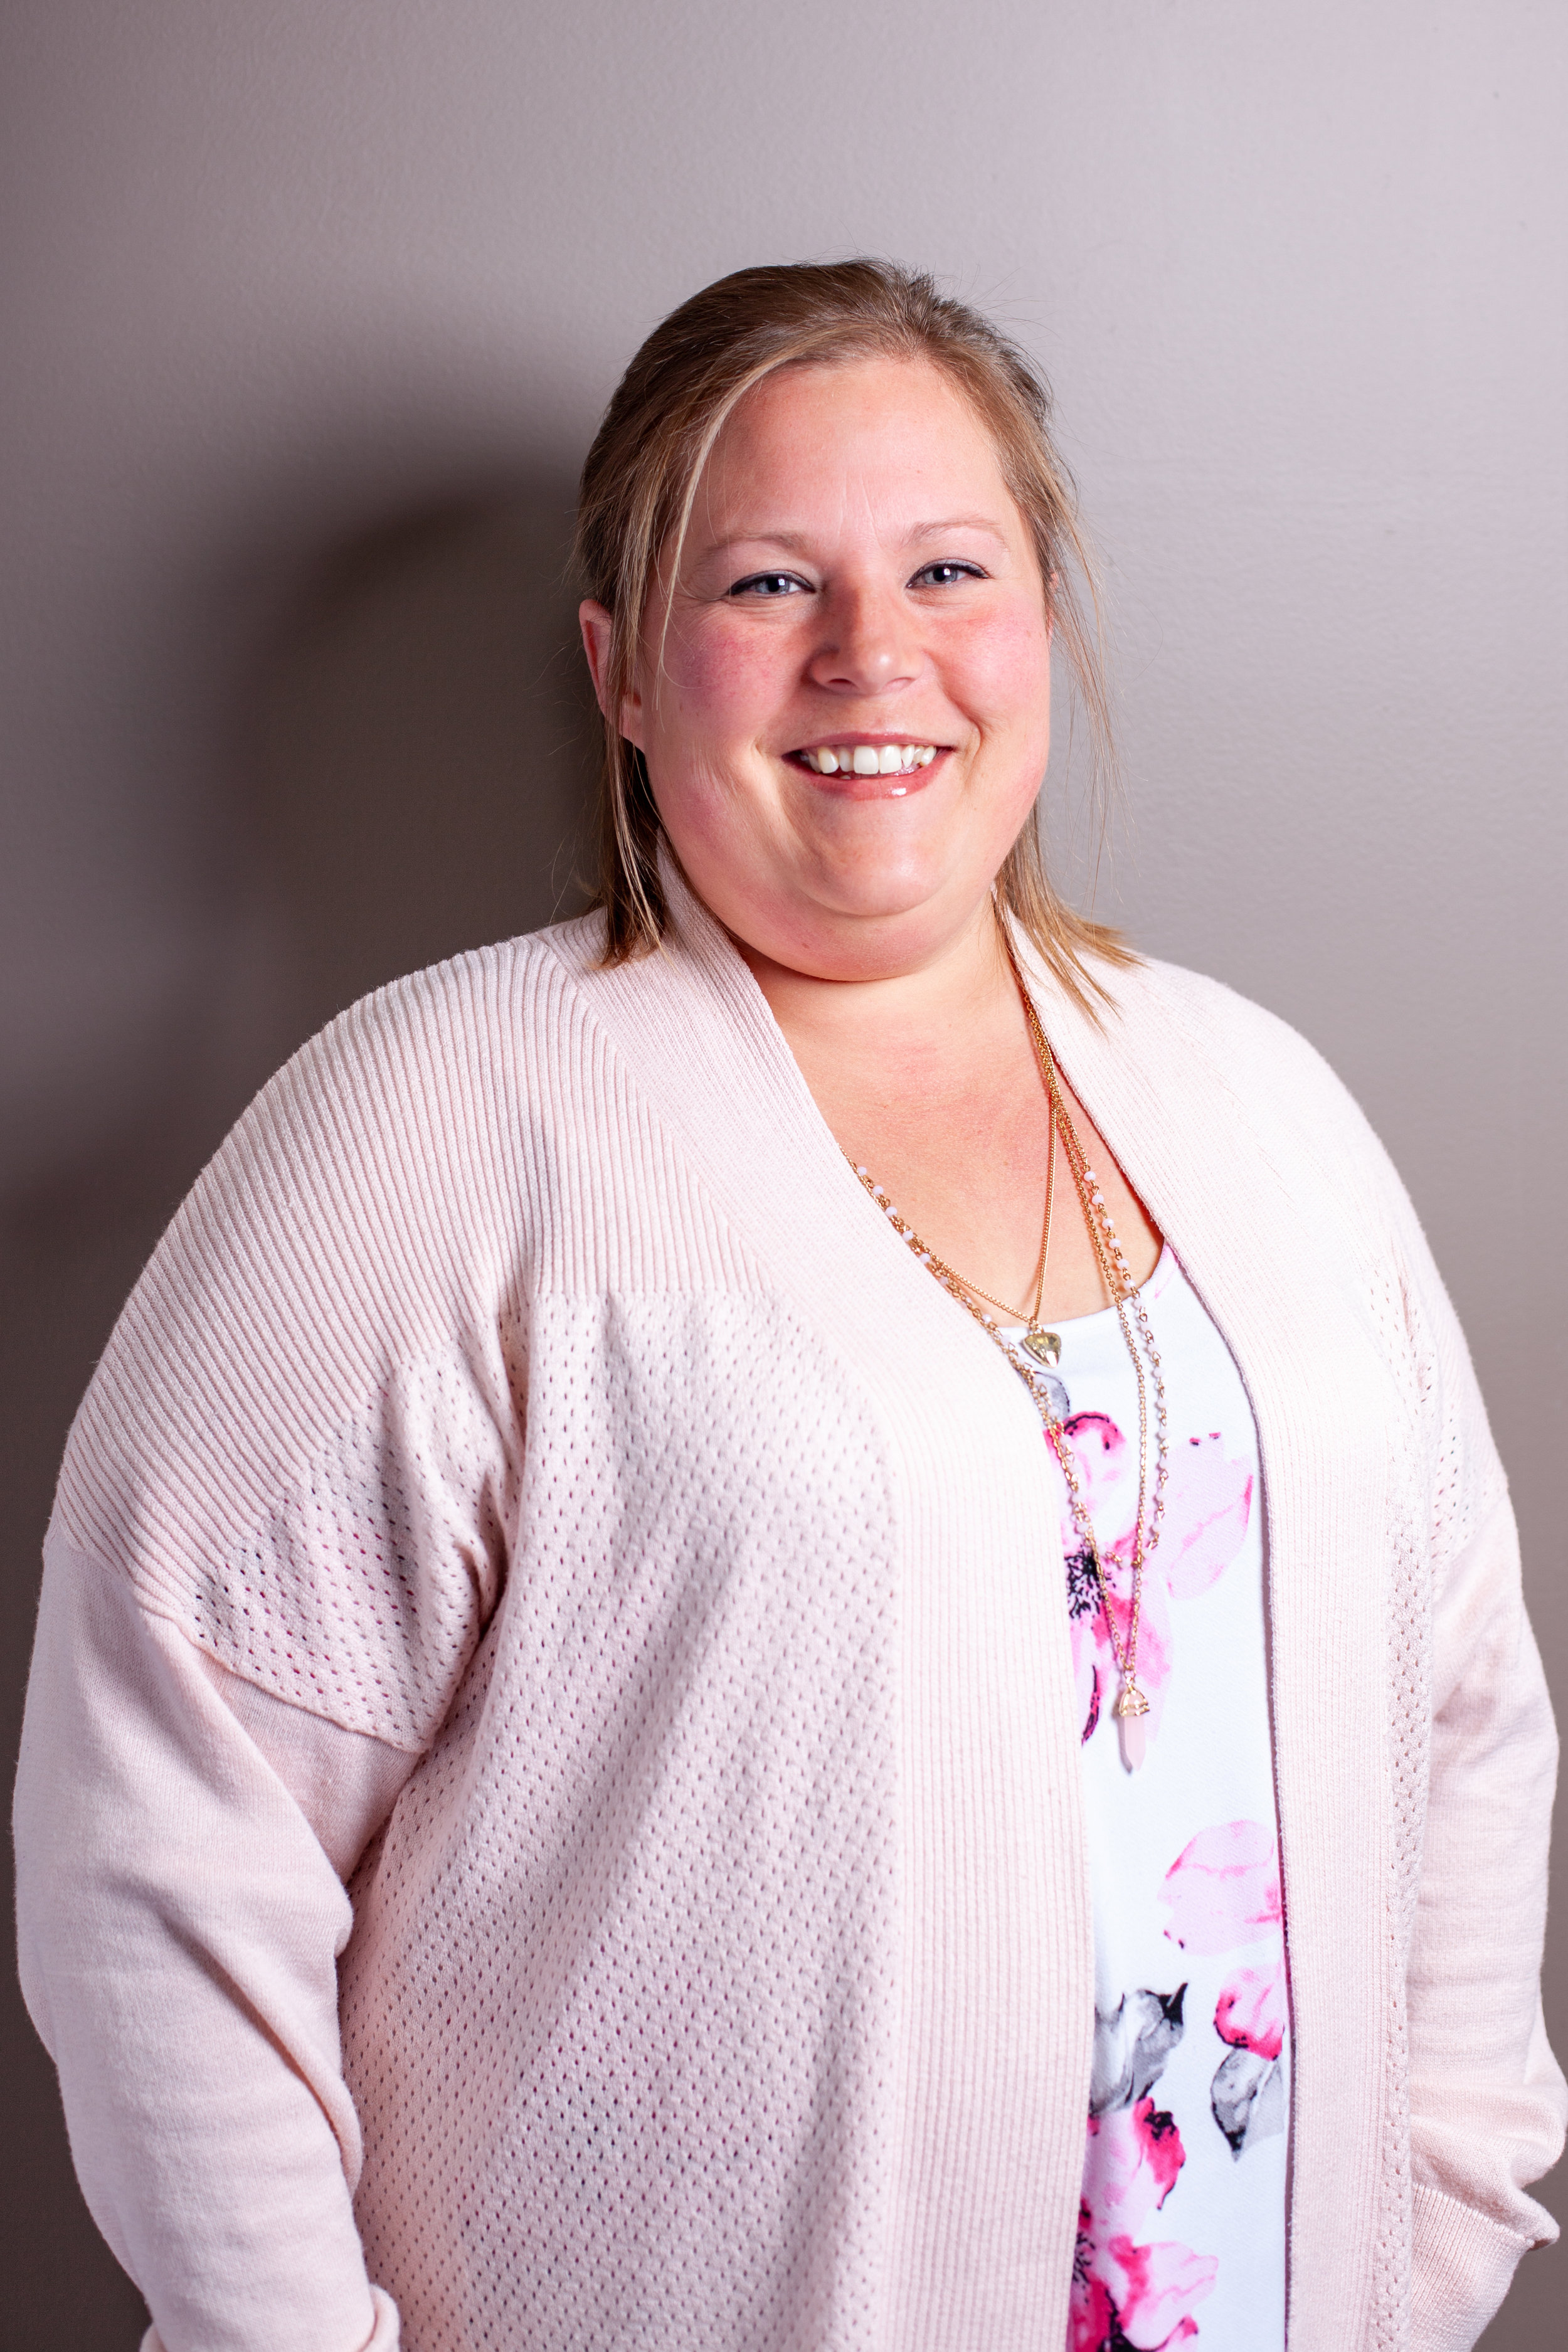 CRYSTAL COBURN, CLIENT SERVICE MANAGER